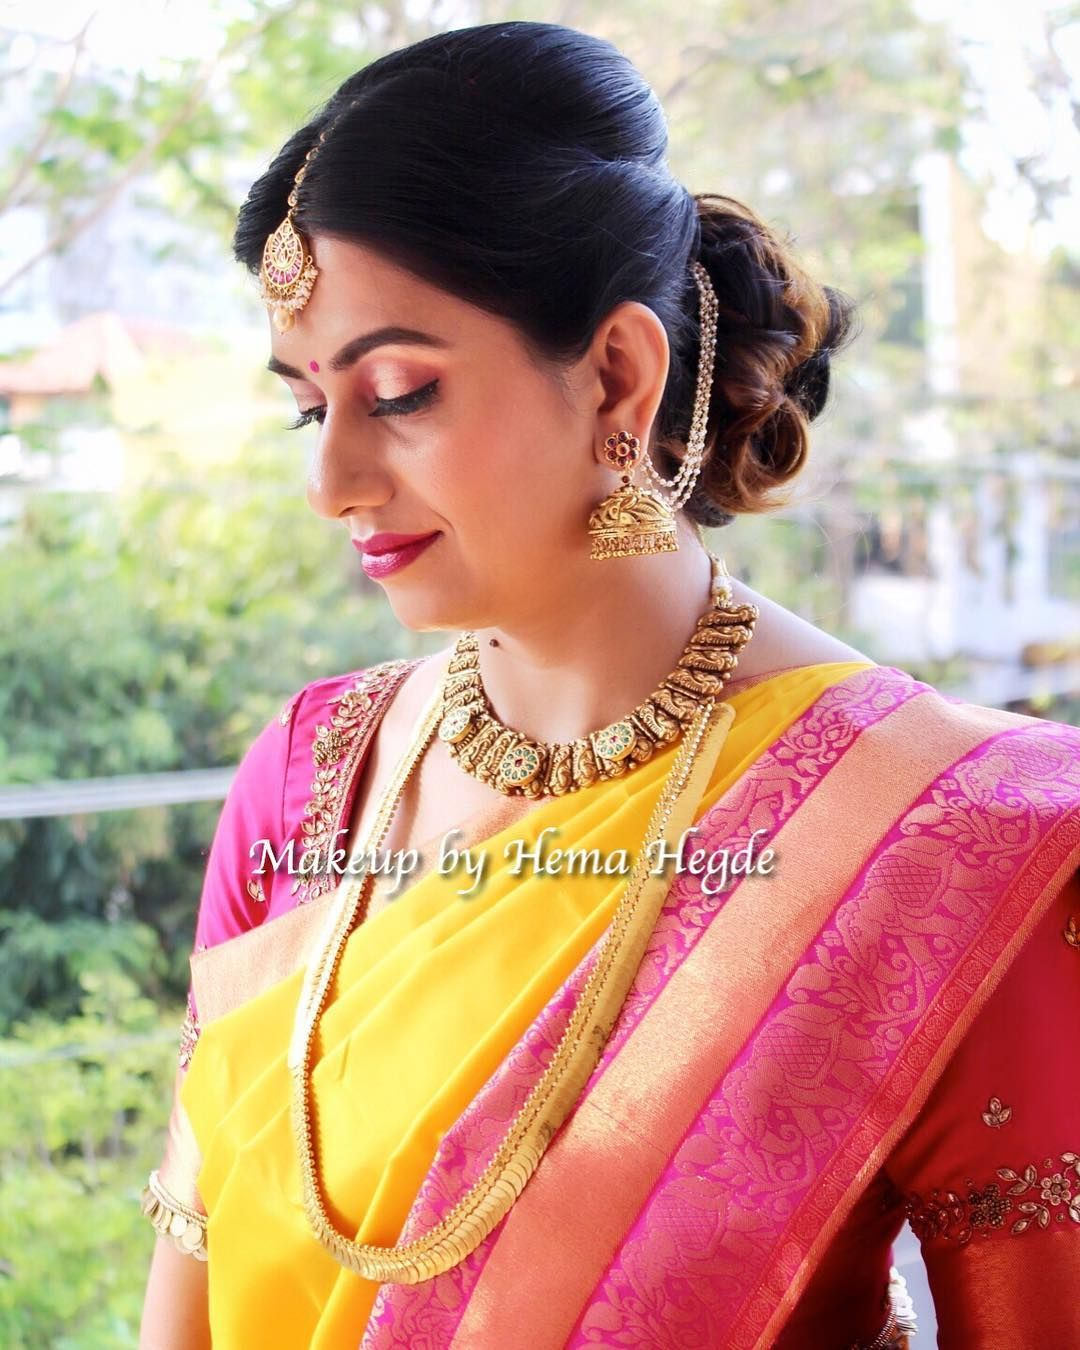 South Indian Wedding Indian Wear Pink And Yellow Silk Saree Traditional South Indian Wed Indian Wedding Hairstyles Indian Hairstyles Wedding Makeup Looks